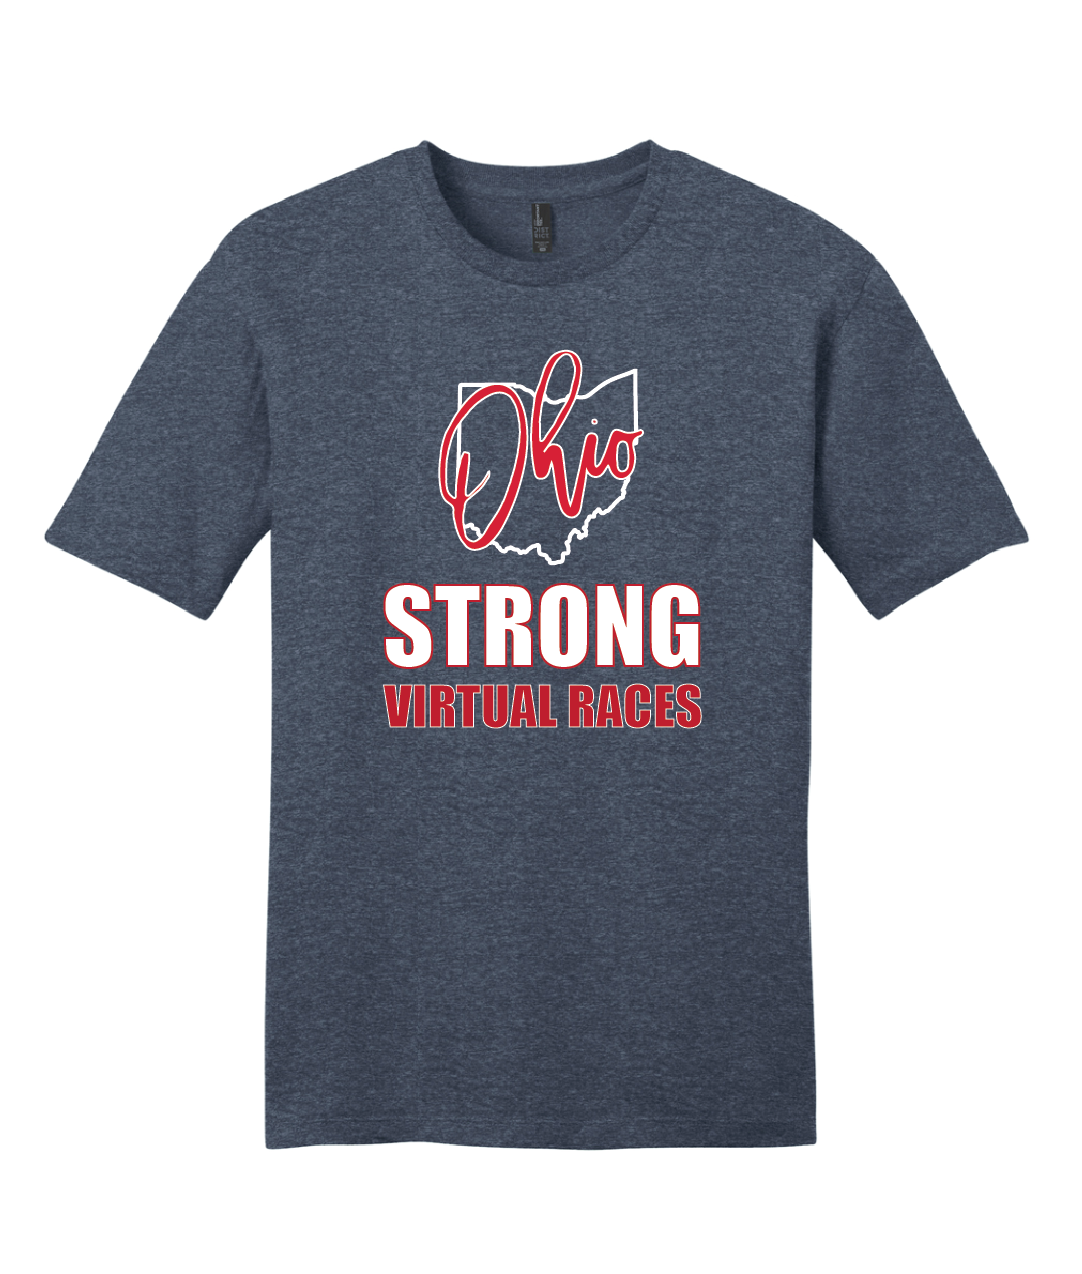 Ohio Strong Virtual Races T-shirt